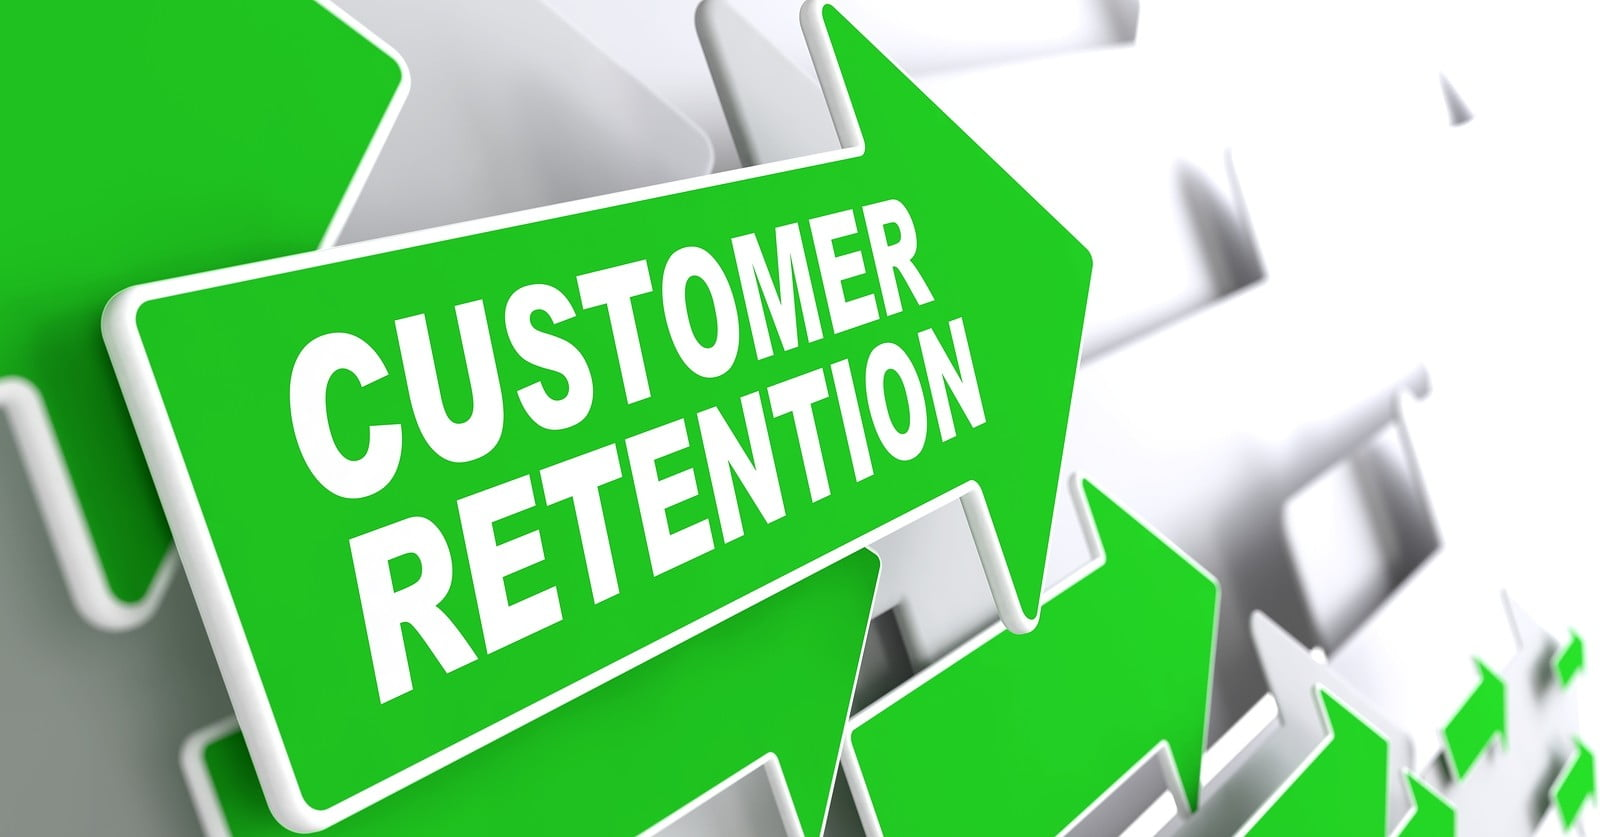 How Will a Company Newsletter Improve Customer Retention